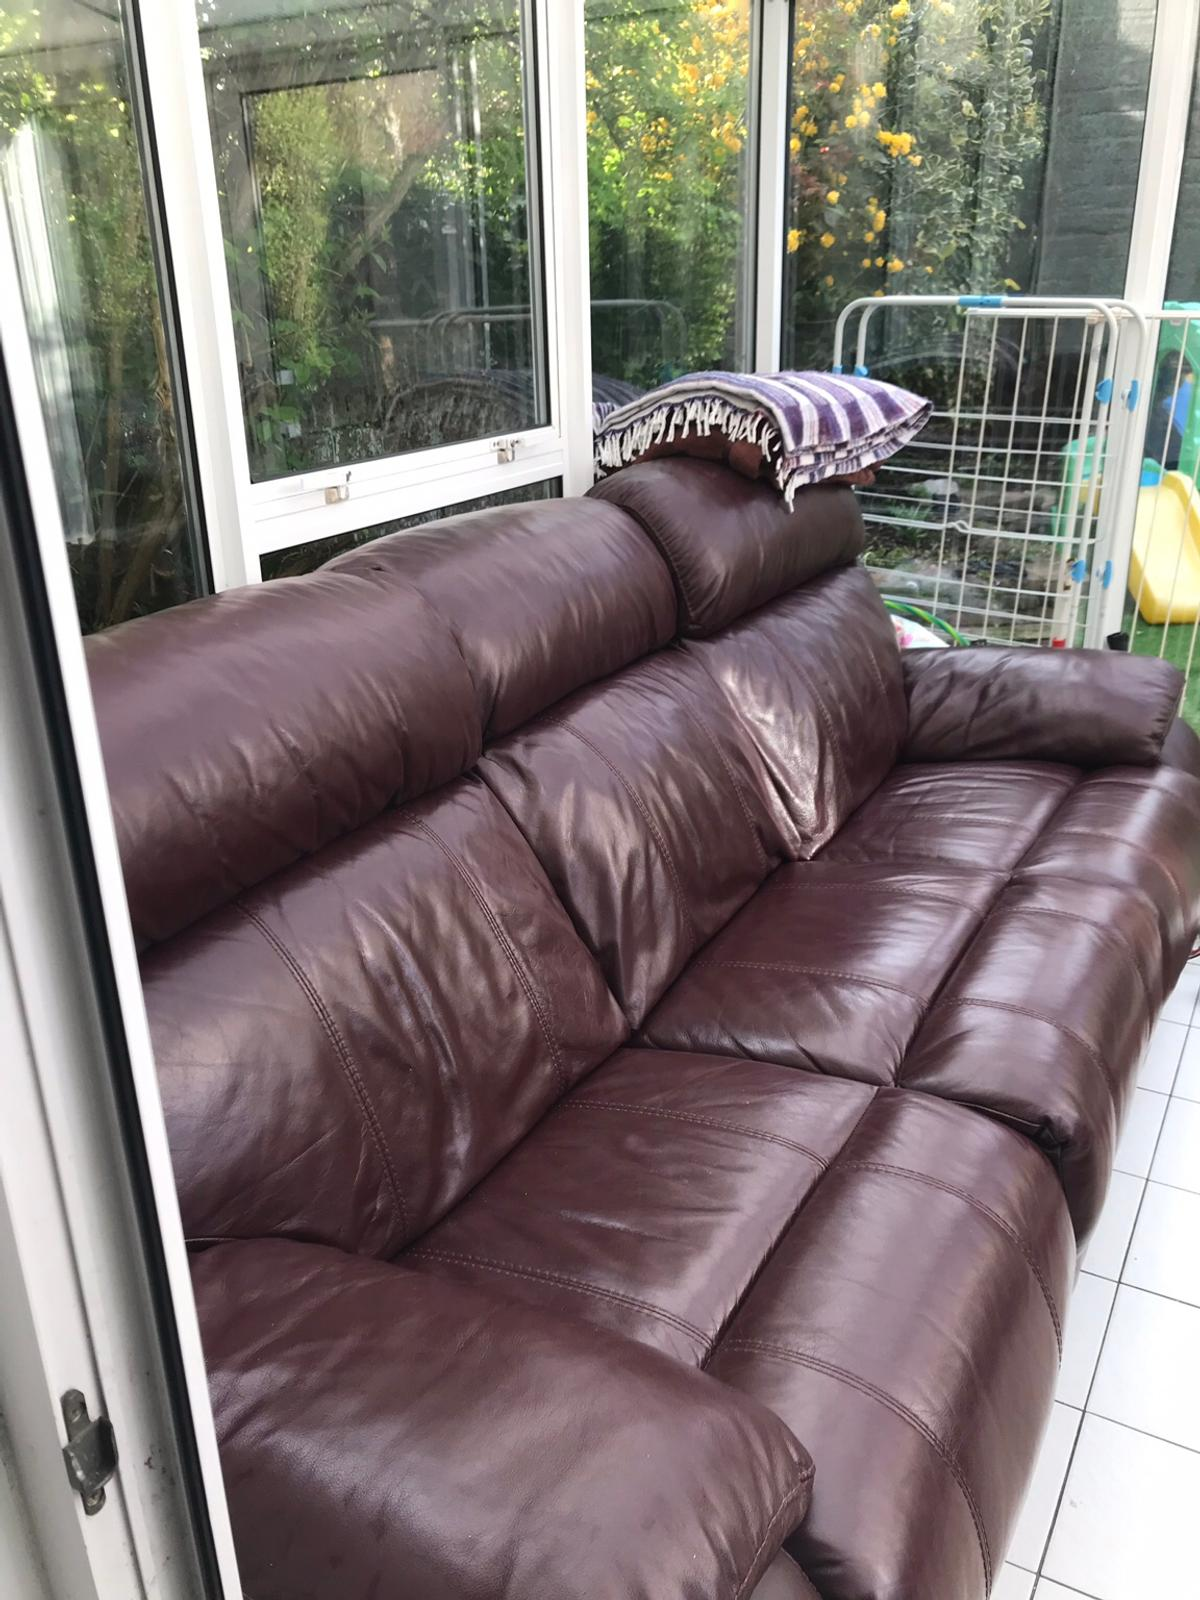 Enjoyable Reclining Burgundy Leather Sofa In Eastbourne Fur 280 00 Pabps2019 Chair Design Images Pabps2019Com